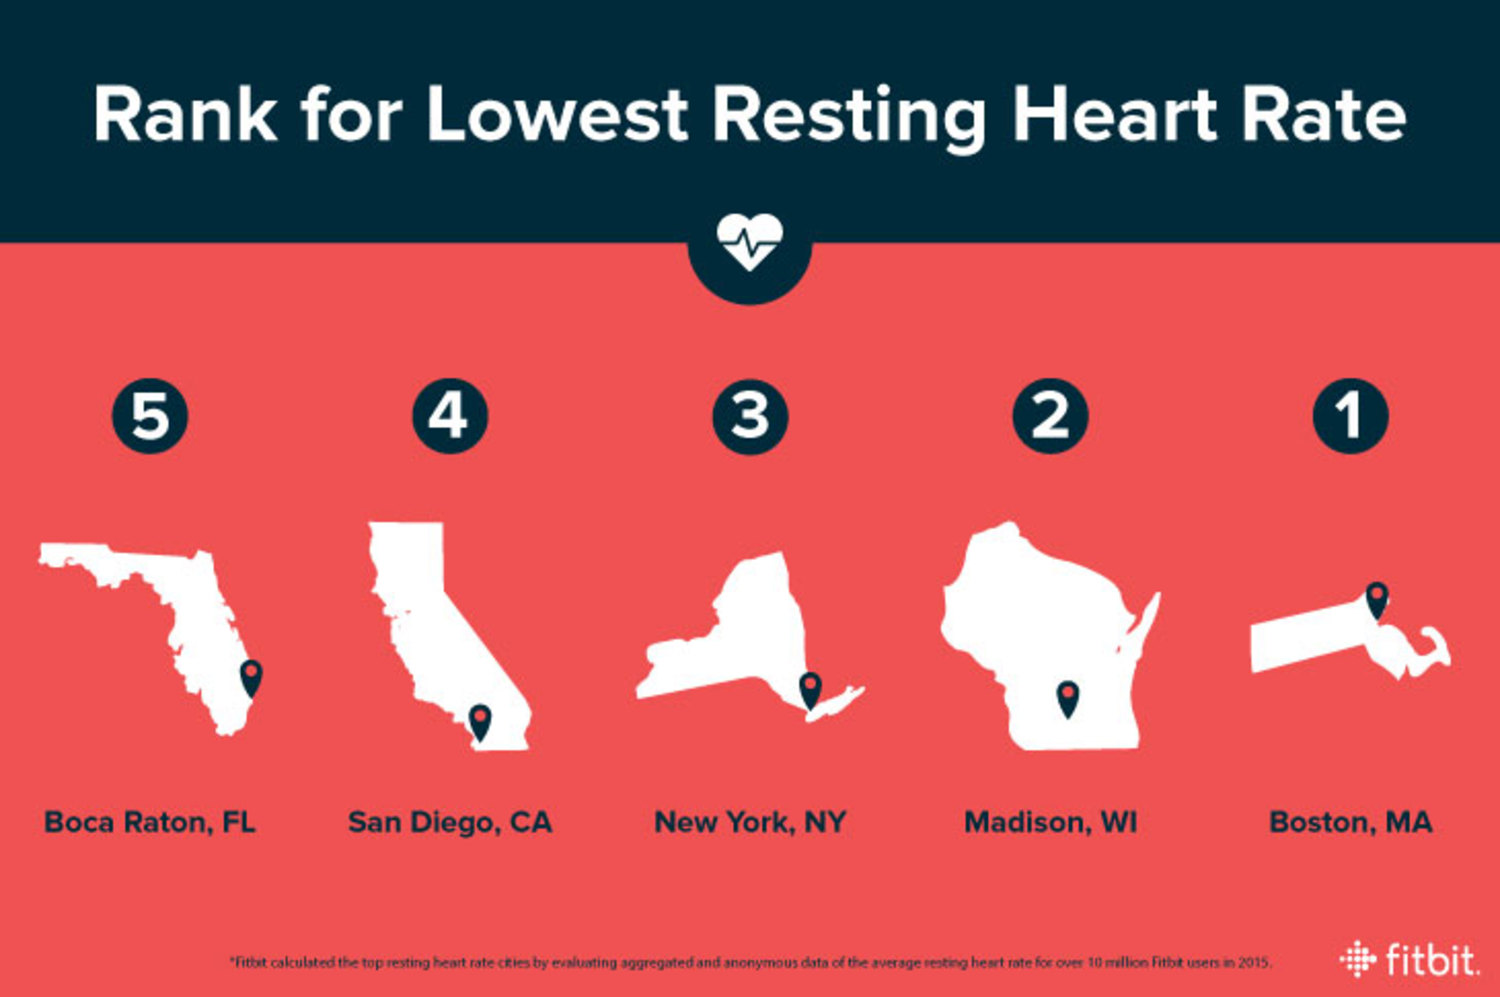 Cities with the Lowest Resting Heart Rate